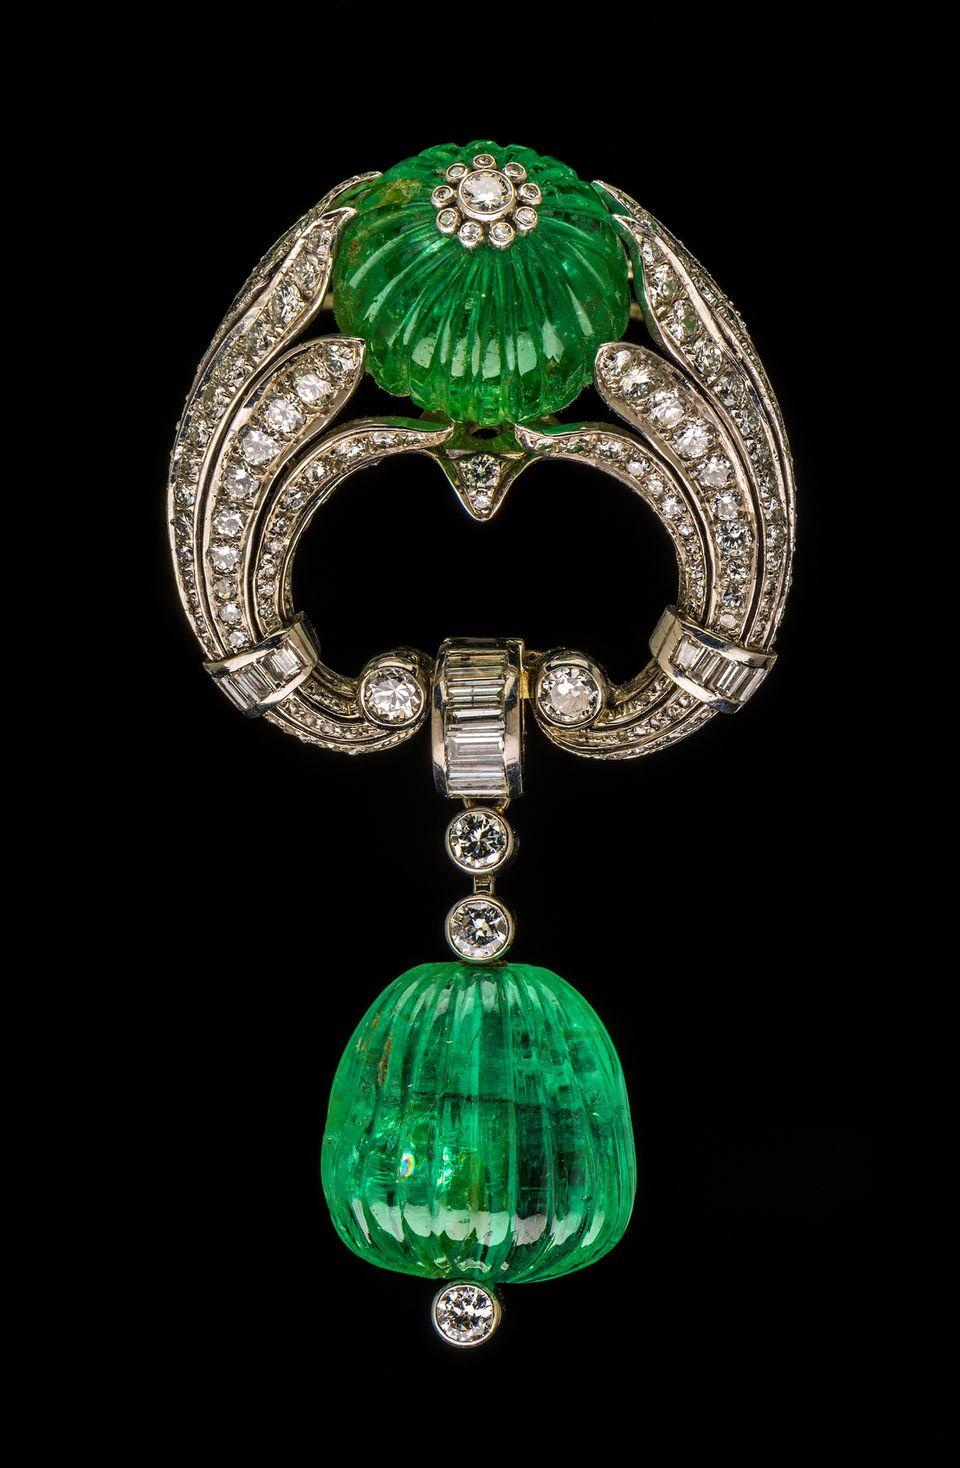 The emerald and diamond brooch that Bettina Burr's grandfather gave her grandmother on their 25th wedding anniversary.